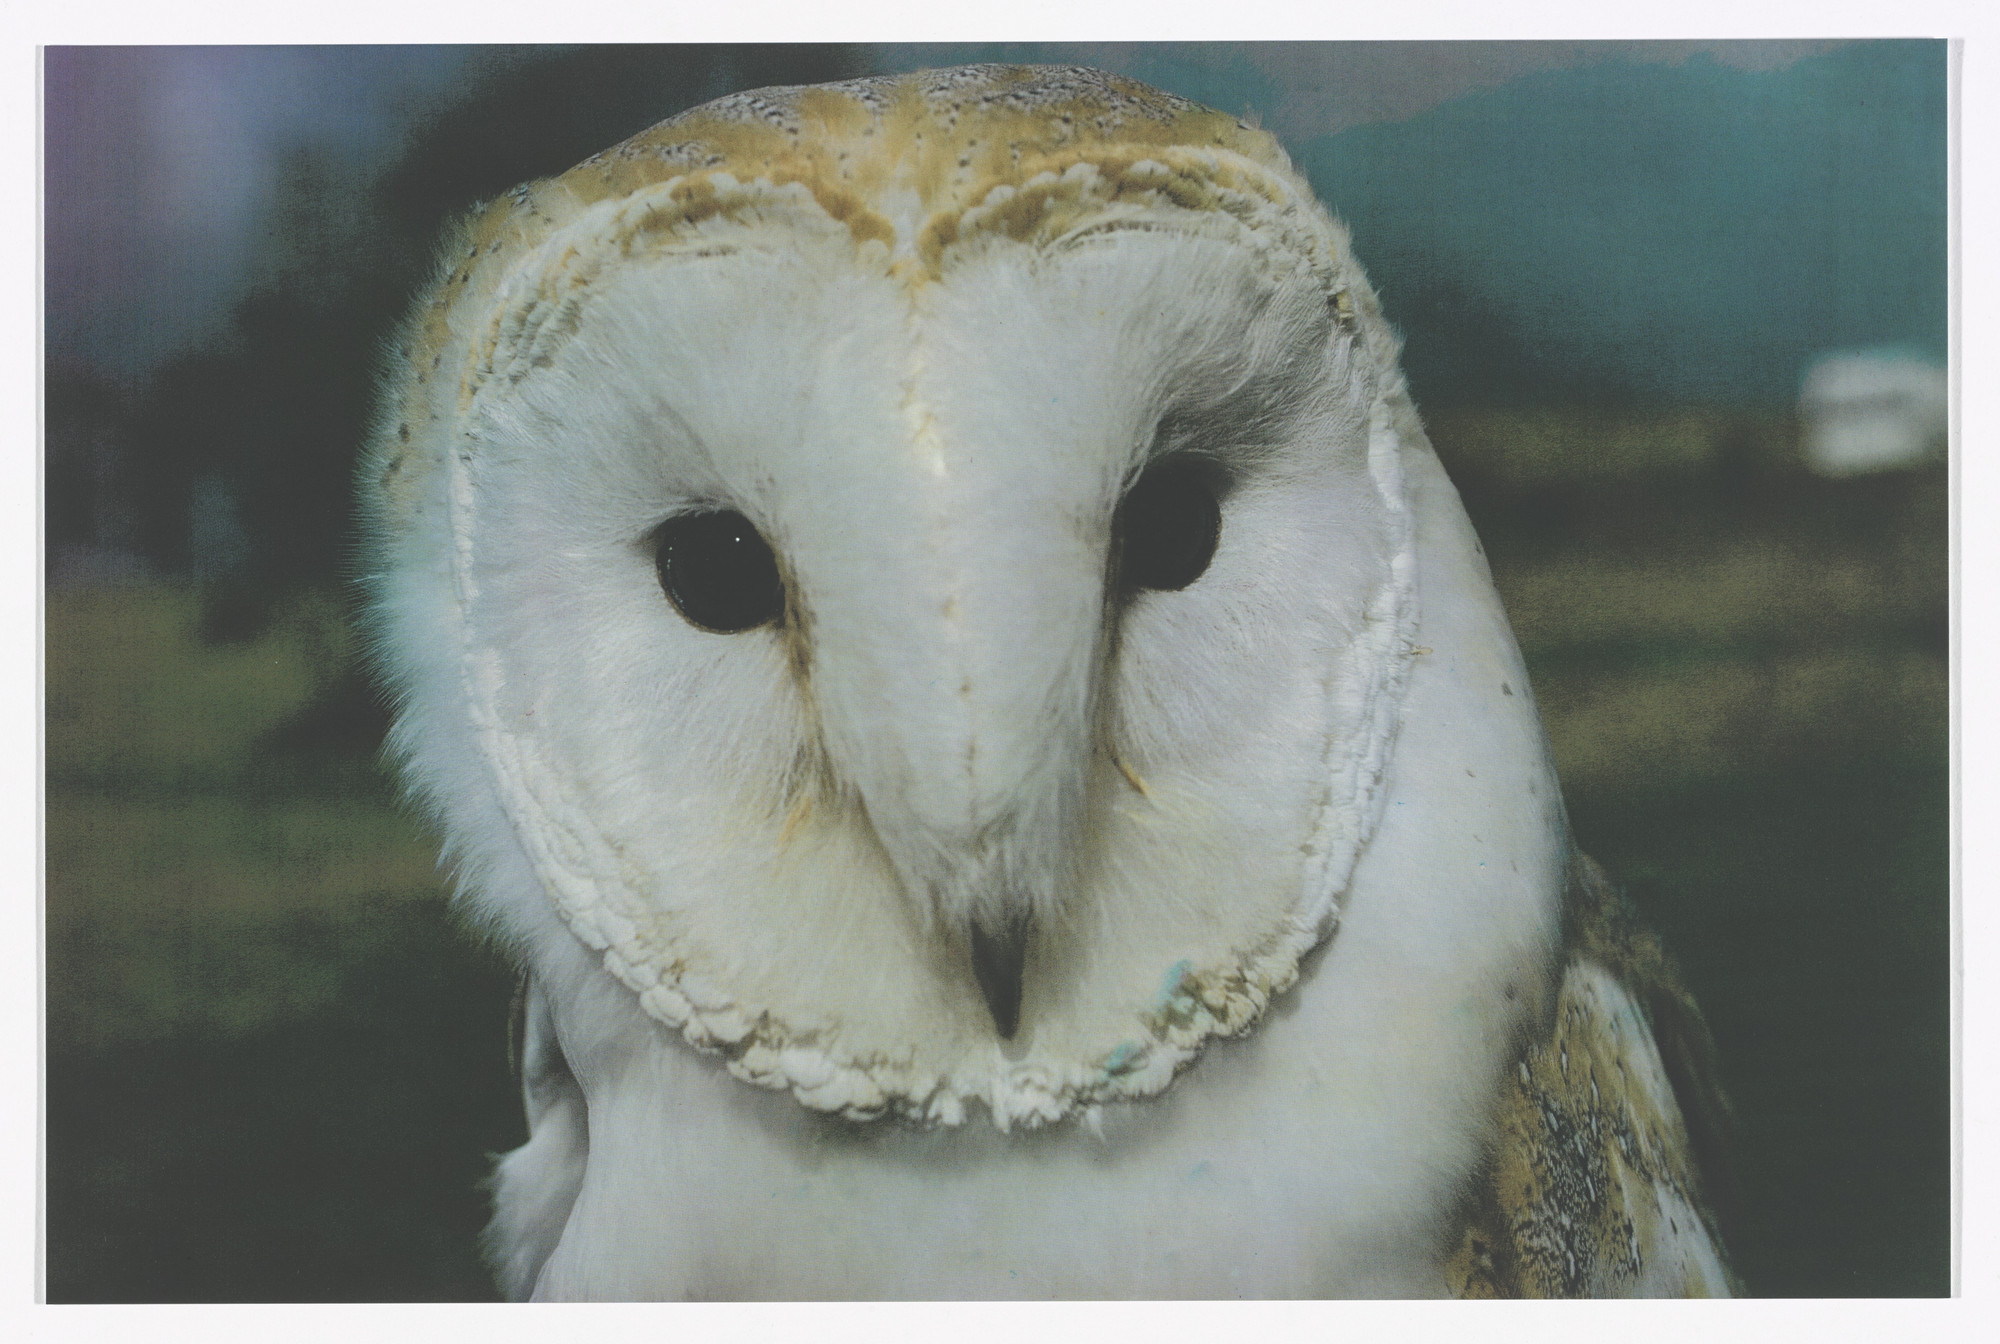 Jeremy Deller. Barn Owl, 2013 (from English Magic) from Odds and Sods (for Parkett no. 95). 2014